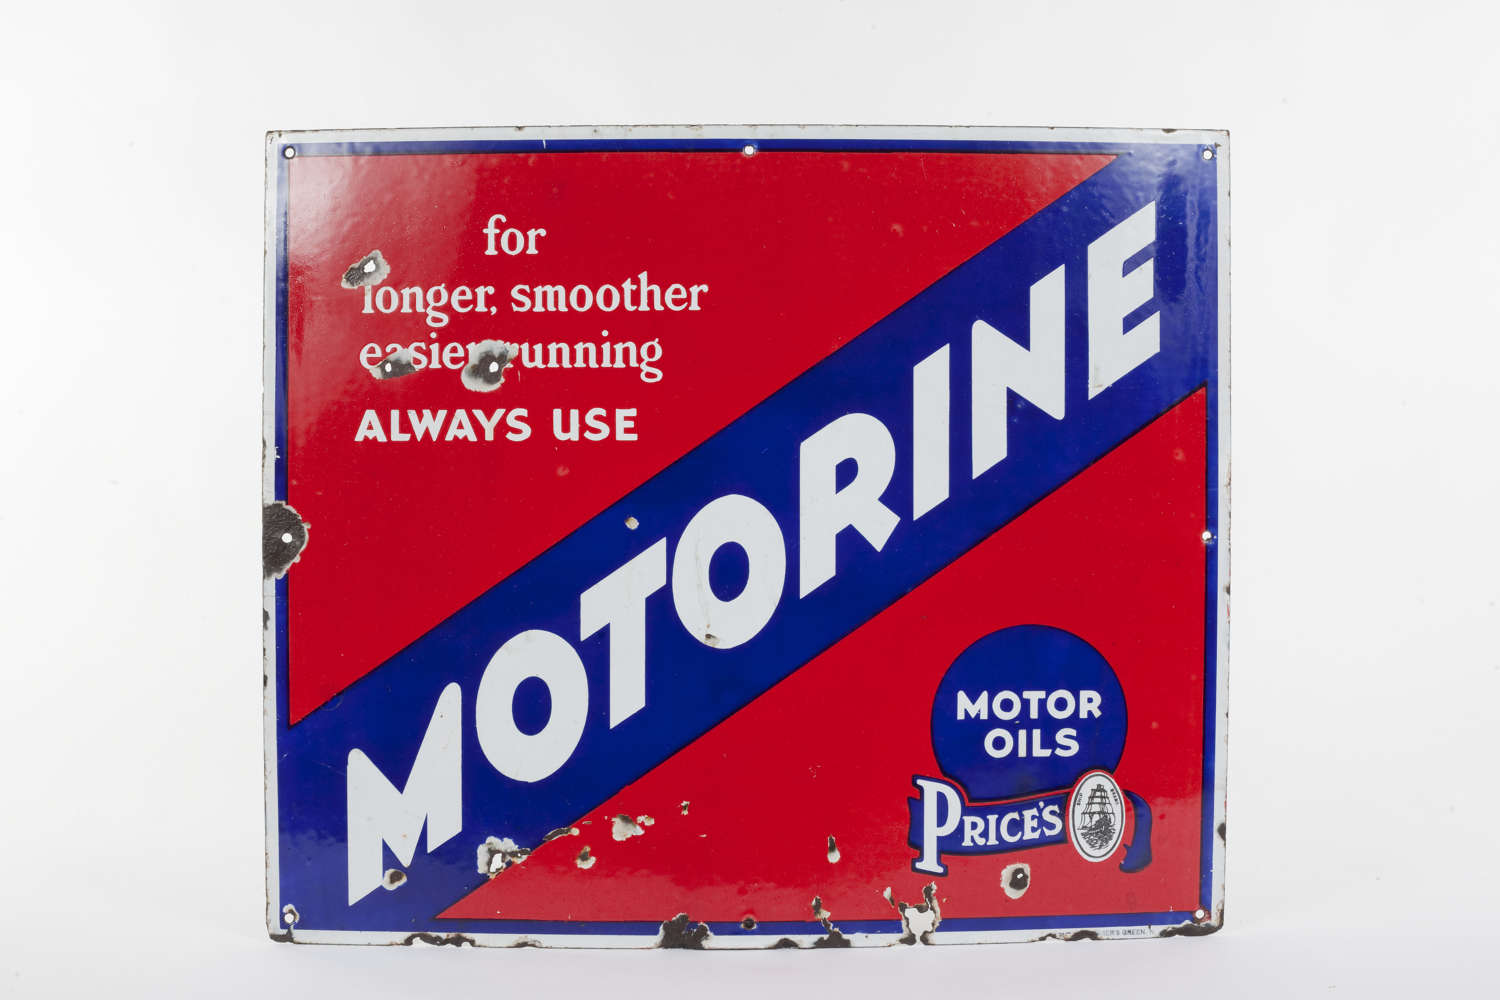 Original enamel advertising sign for Motorine